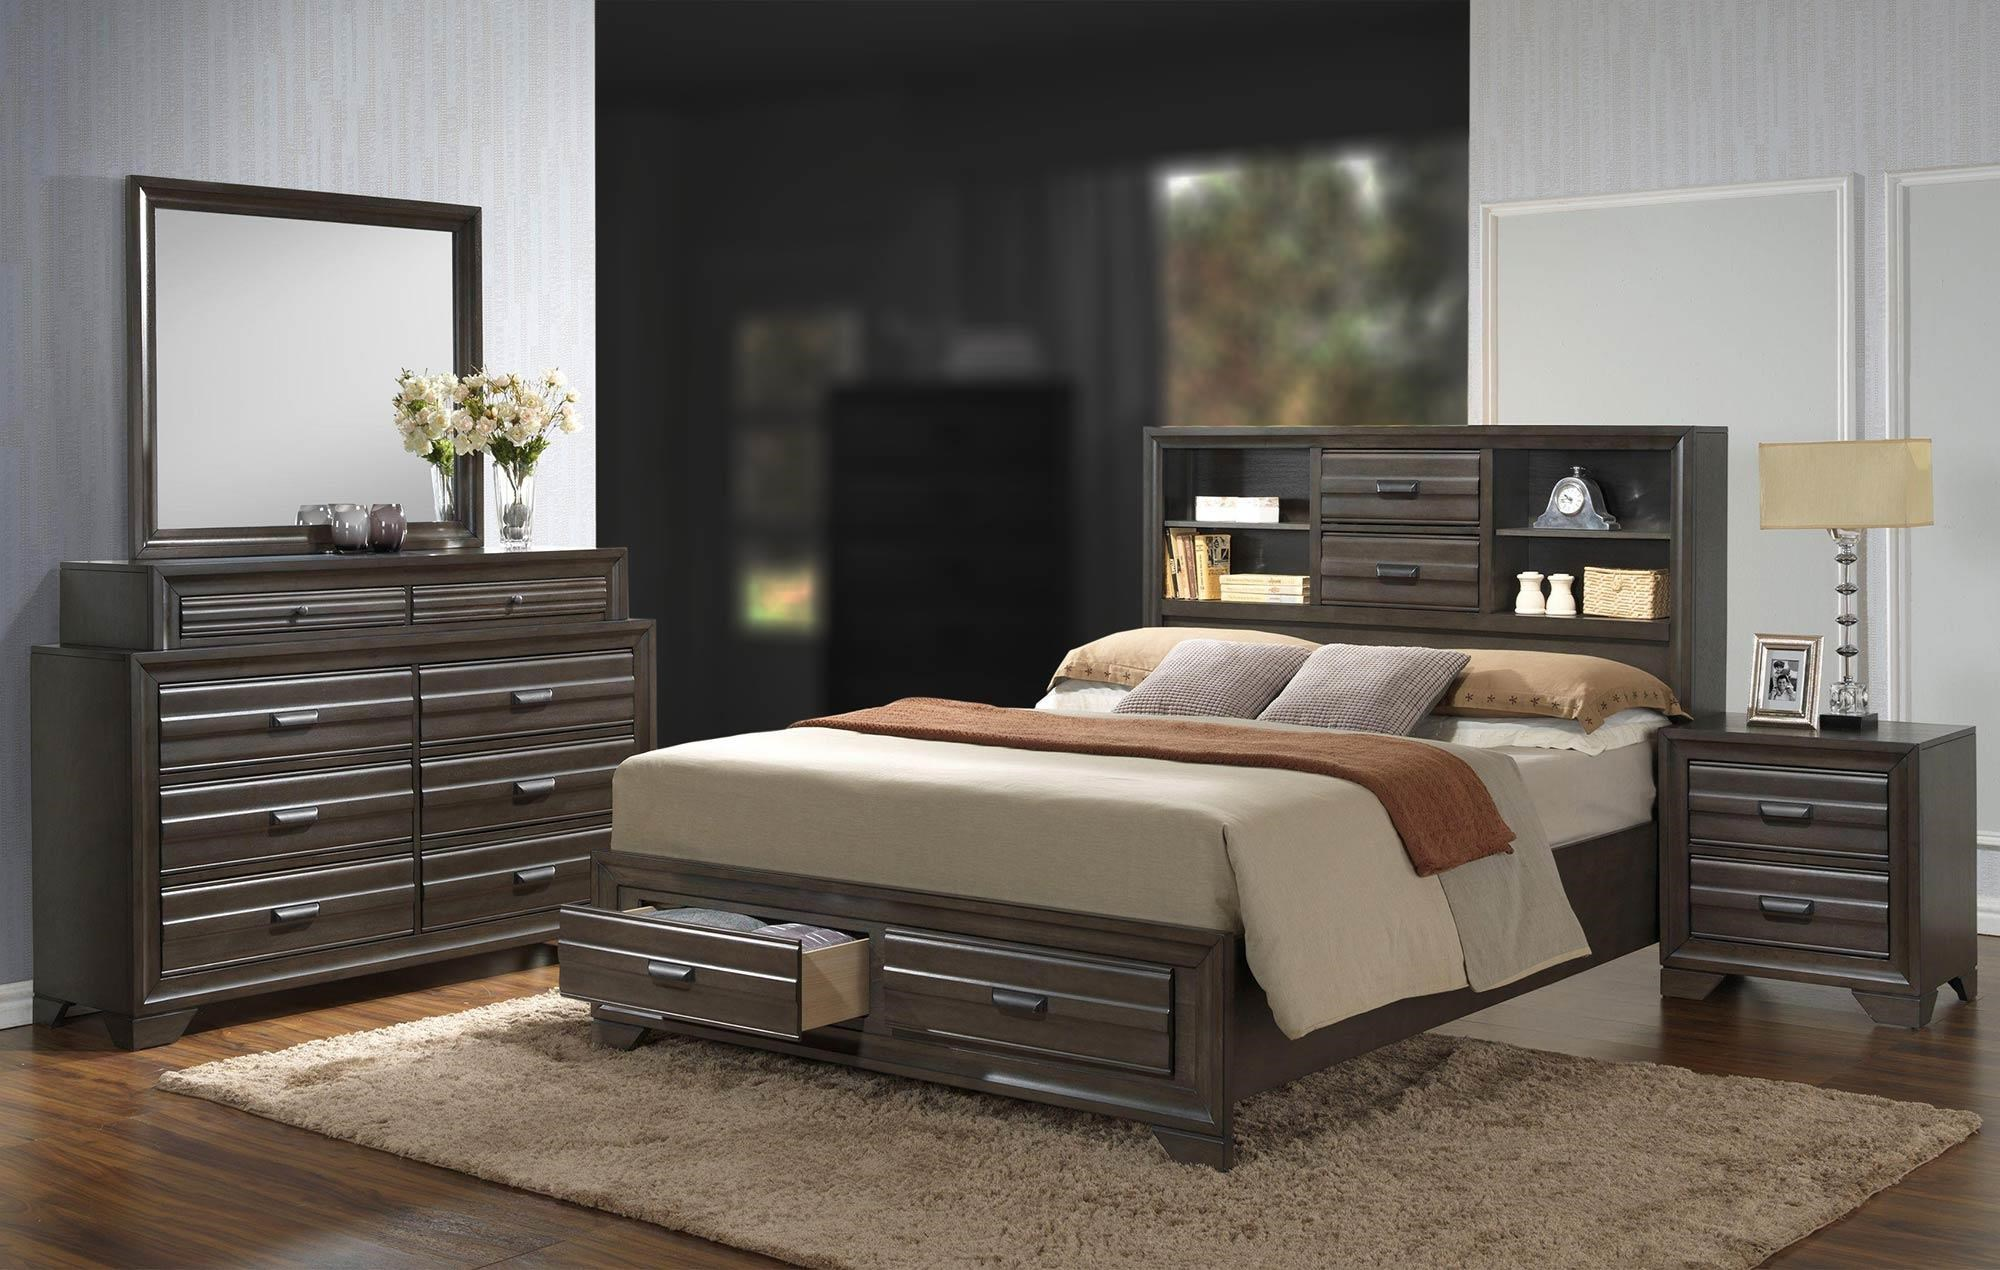 Lifestyle Slater 4PC Queen Bedroom Set - Item Number: 5236A-4PC-QSBR